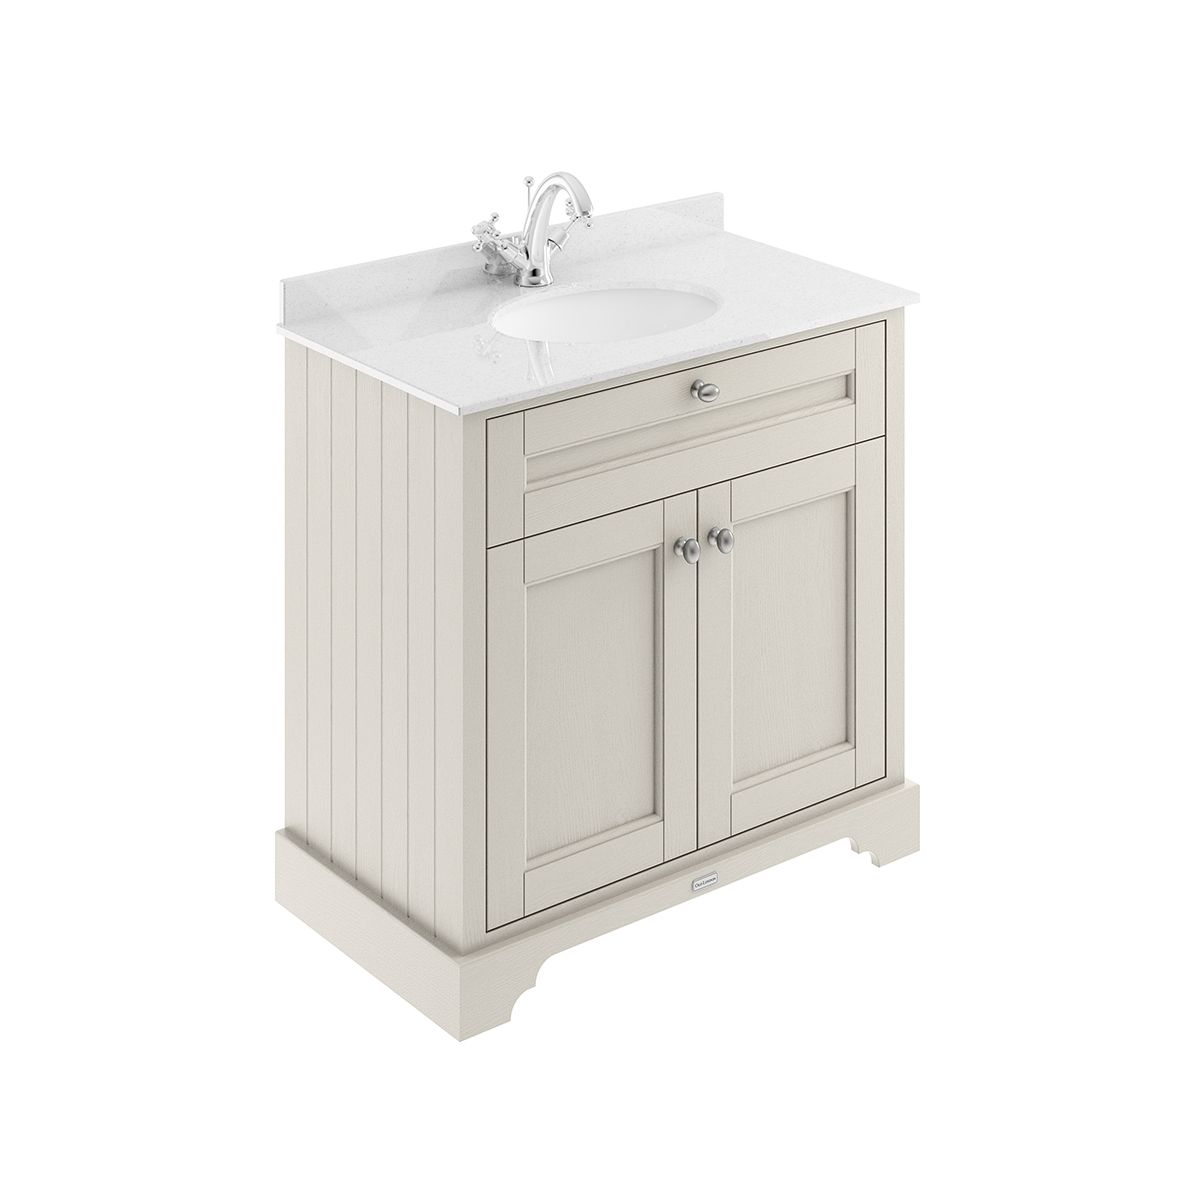 Old London Timeless Sand Vanity Unit with White Marble Top 800mm